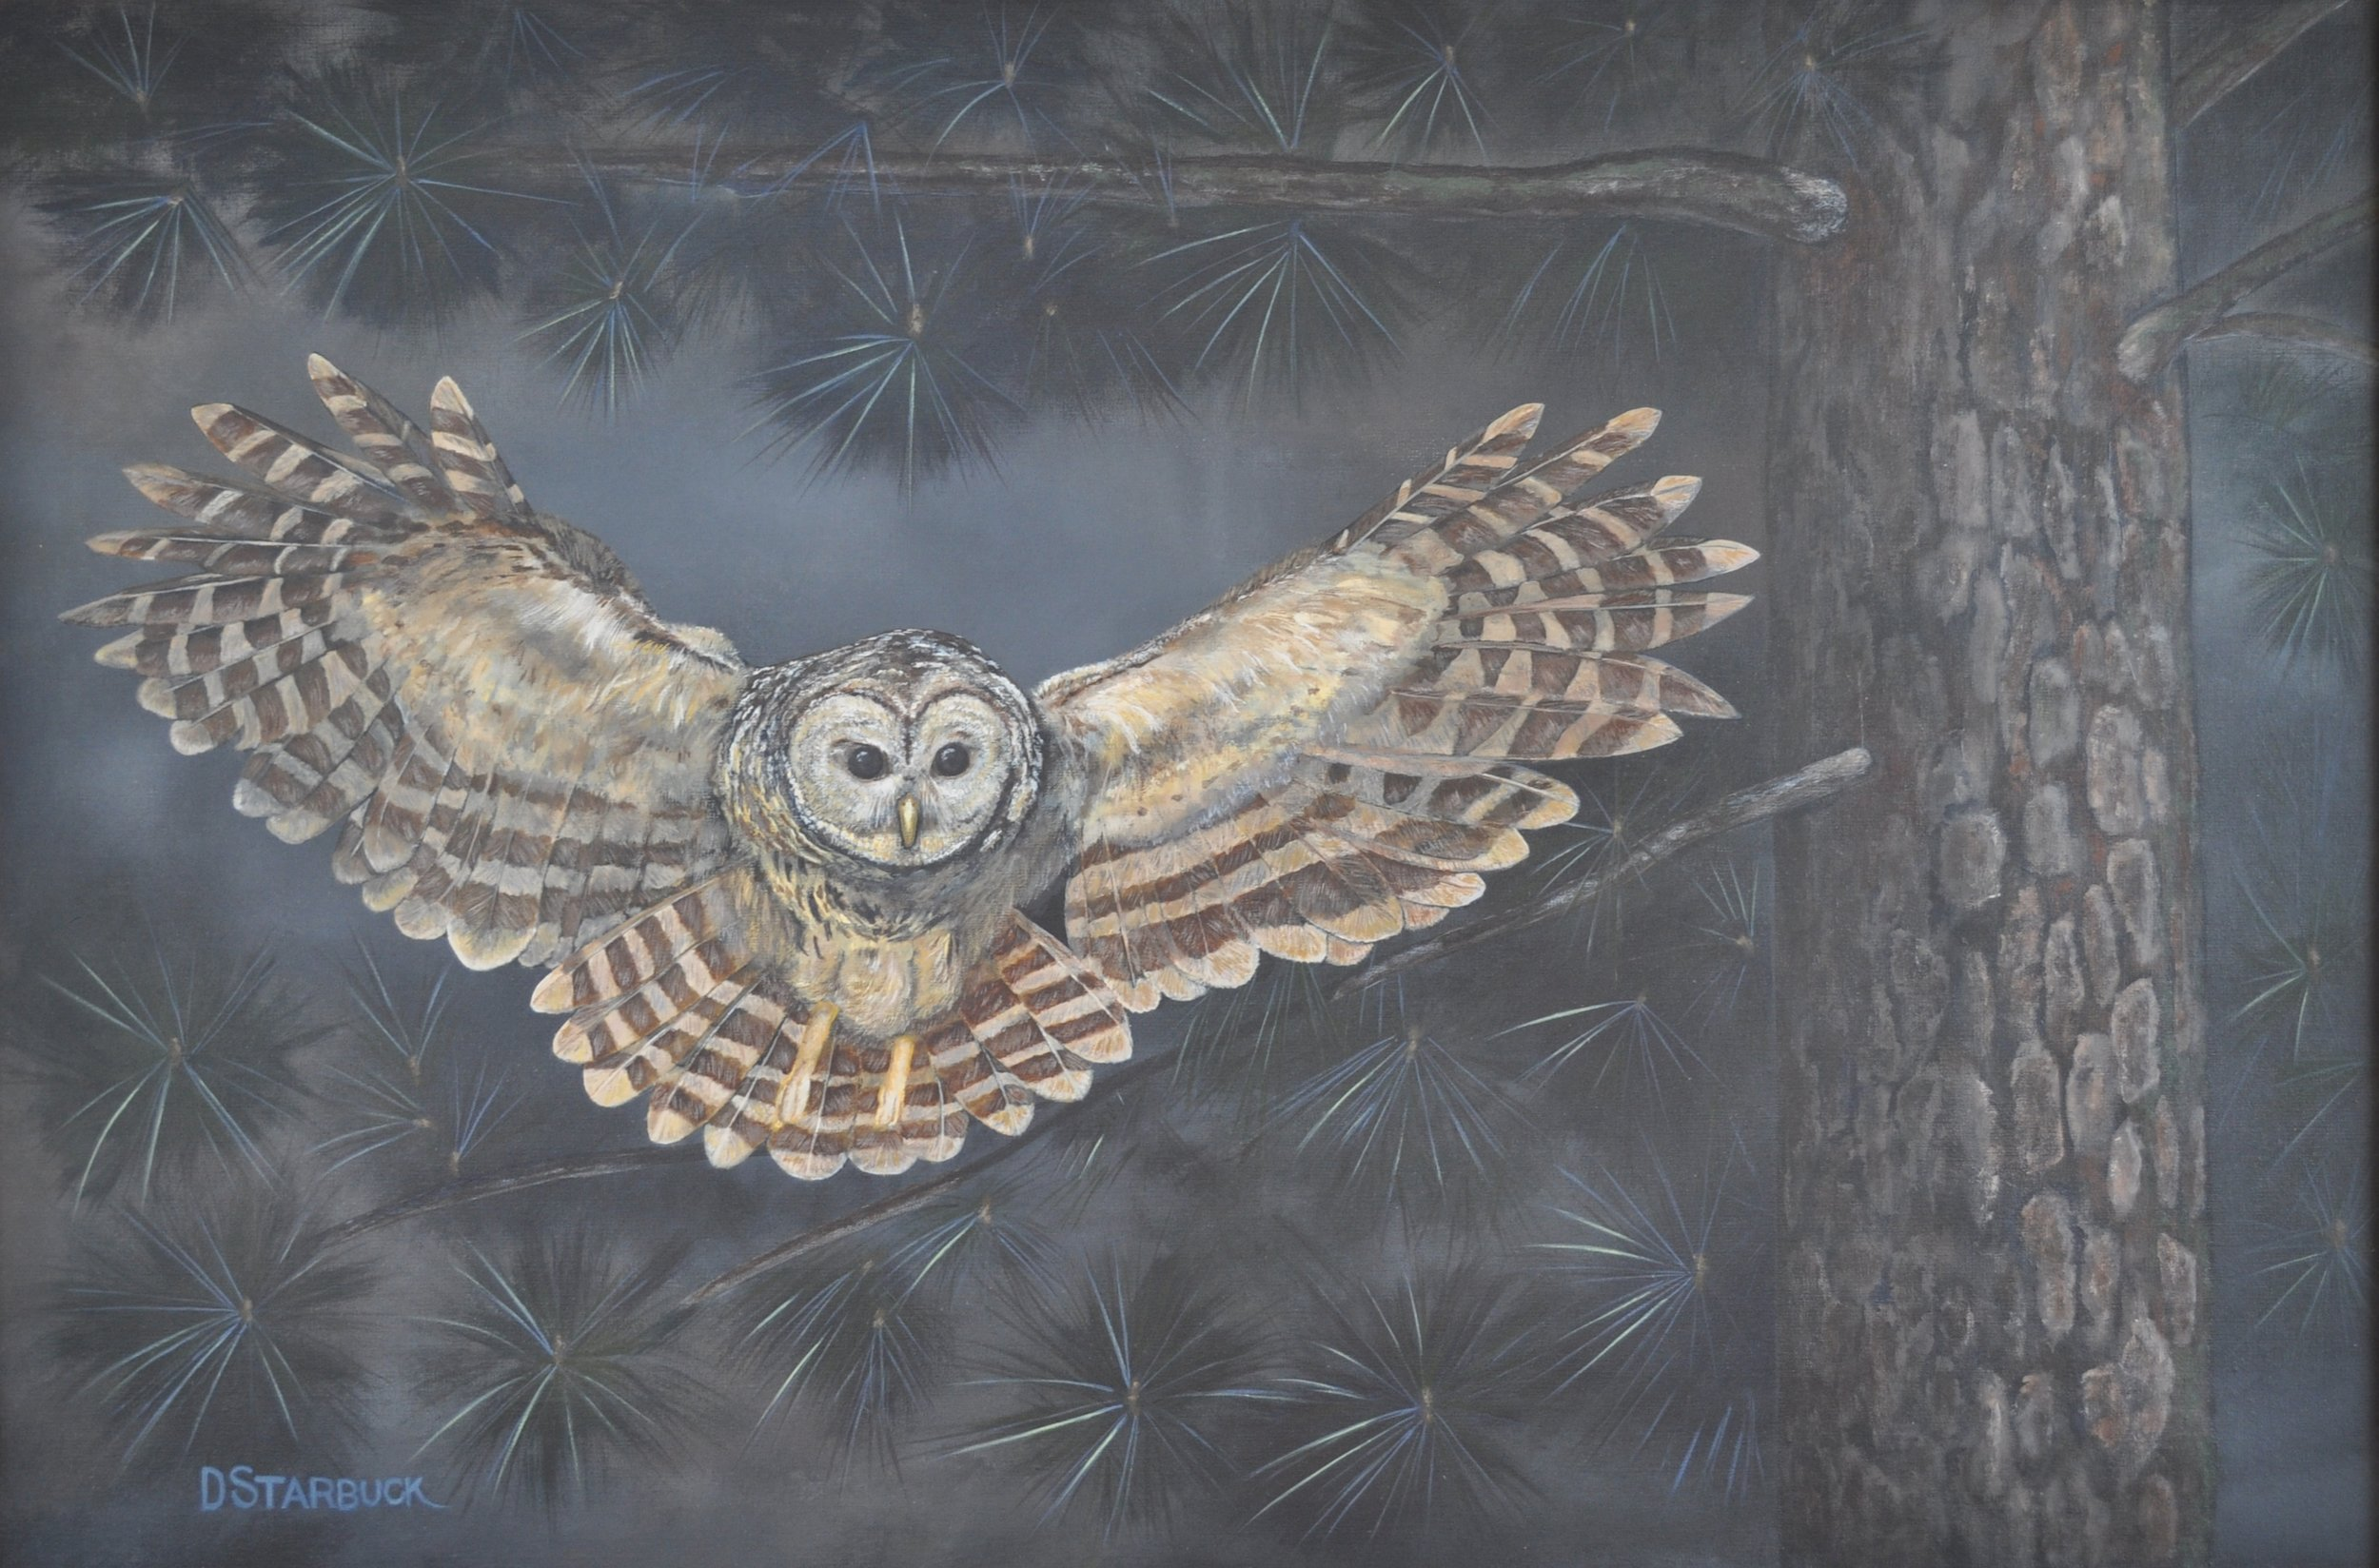 """Whooo Cooks For You,"" Peoples Choice Honors, Harkers Island Fall 2015 NC Wildlife Exhibit  Original: Acrylic on Linen, 36"" x 24"""